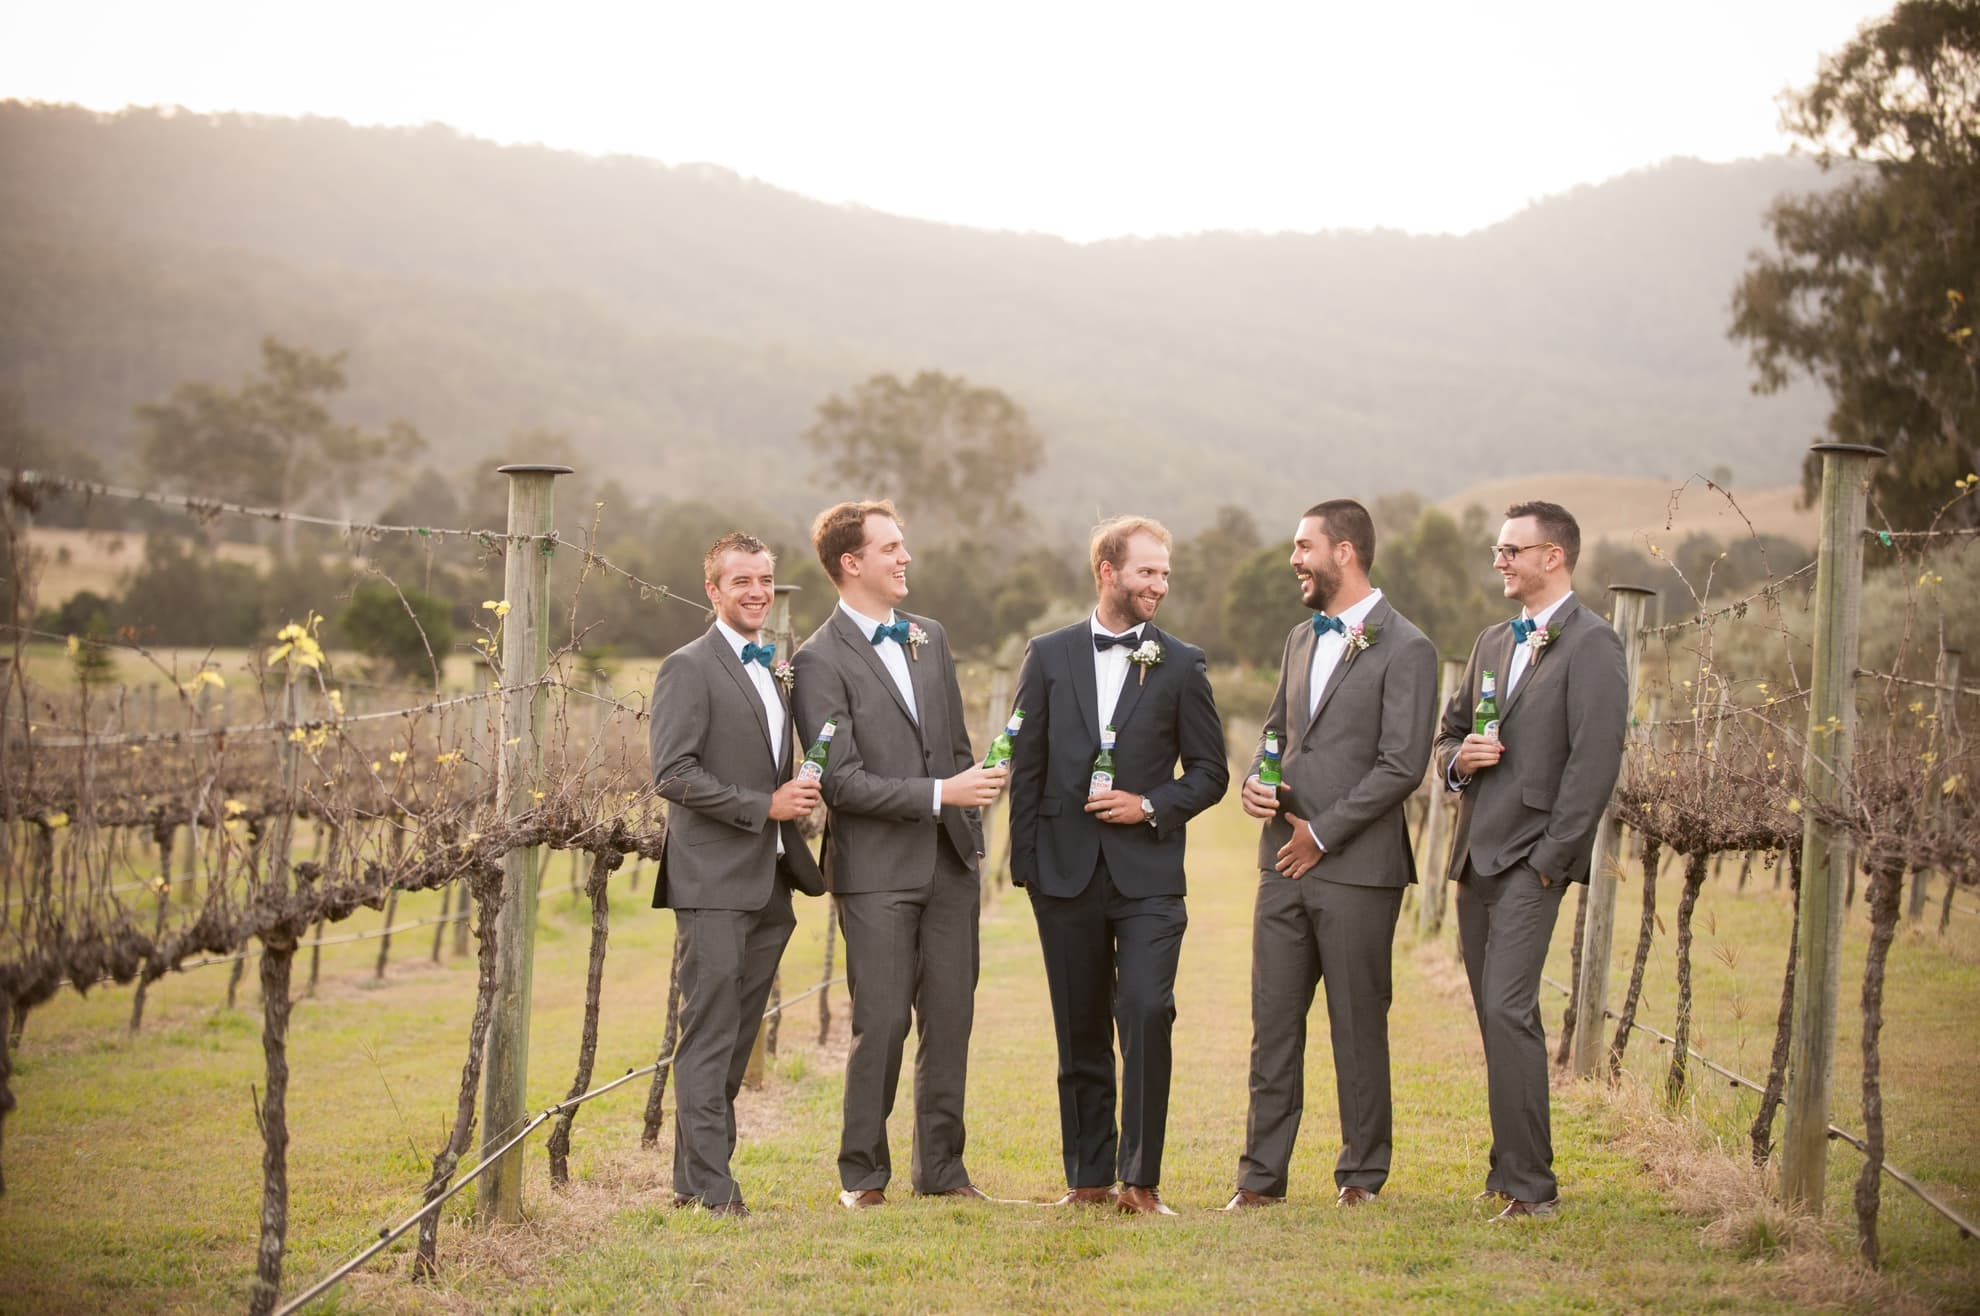 groomsmen-and-groom-having-a-beer-together-in-the-vineyard